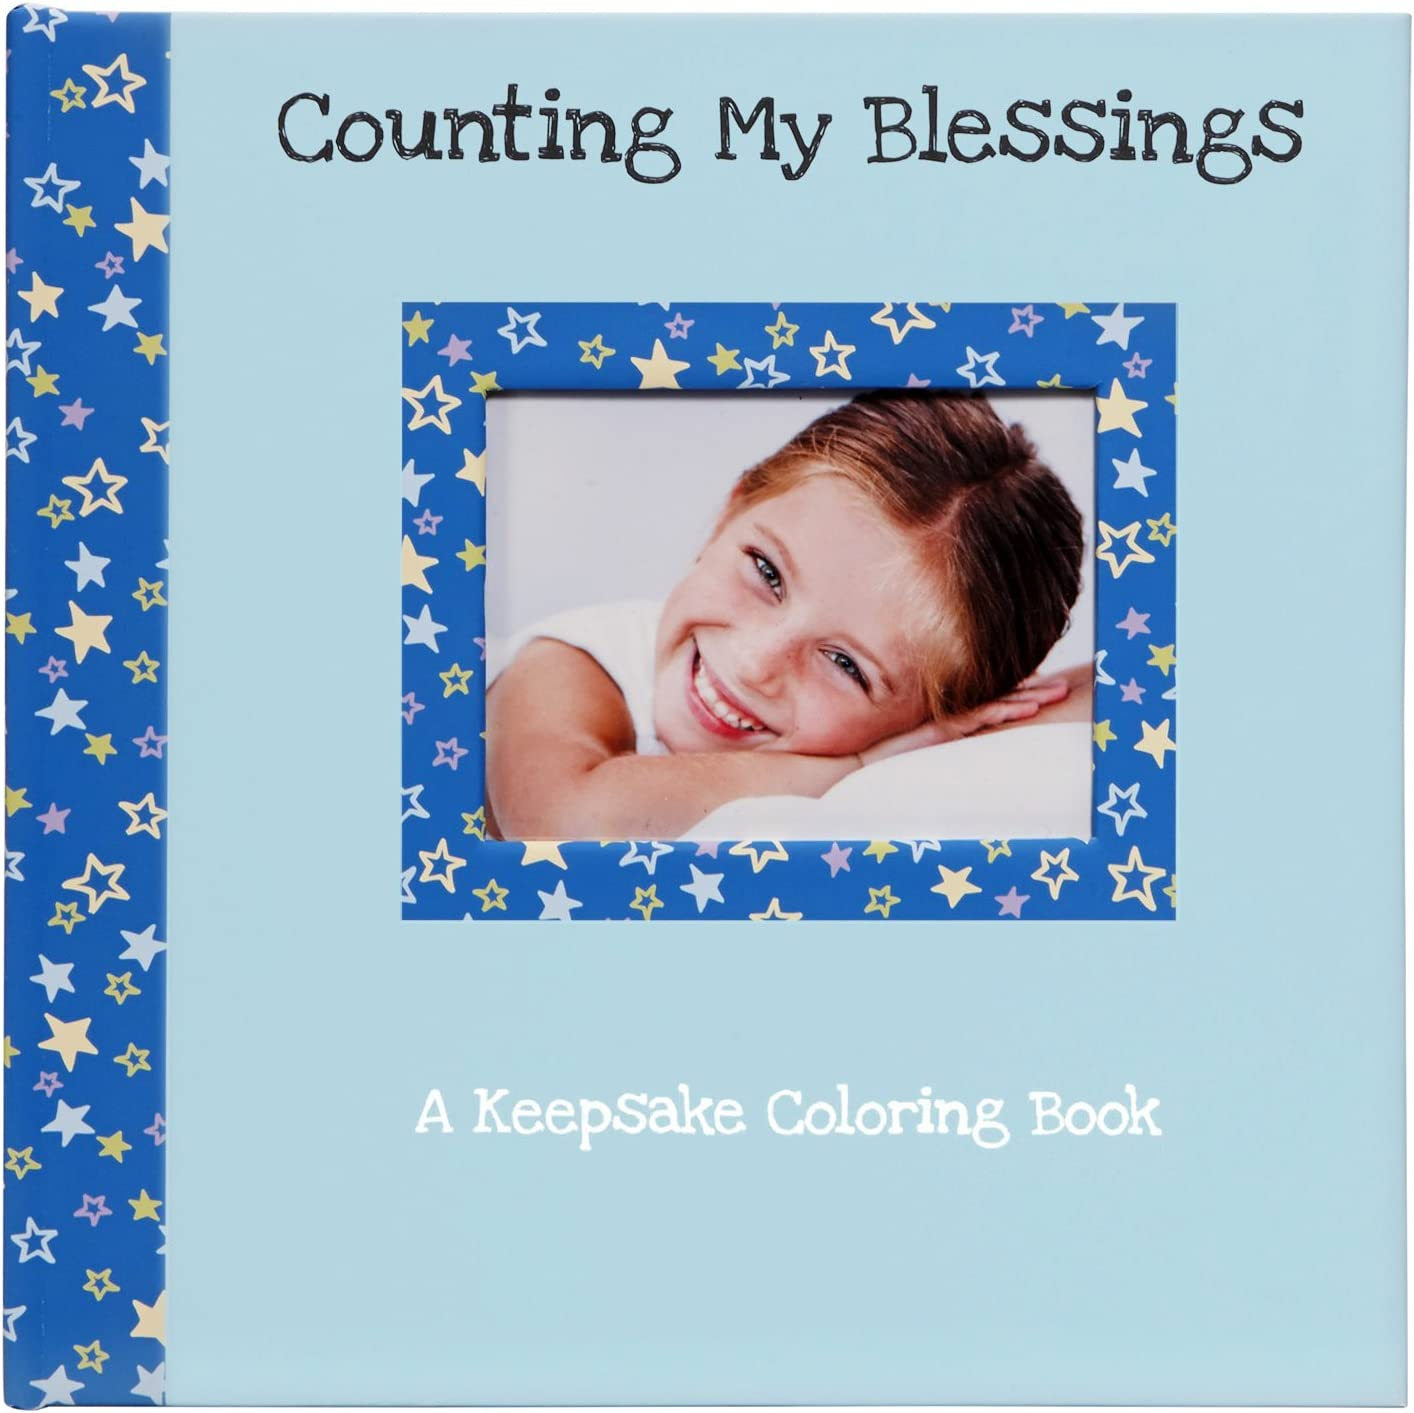 Max 71% OFF Now on sale C.R. Gibson Keepsake Counting My Blessings Book Coloring